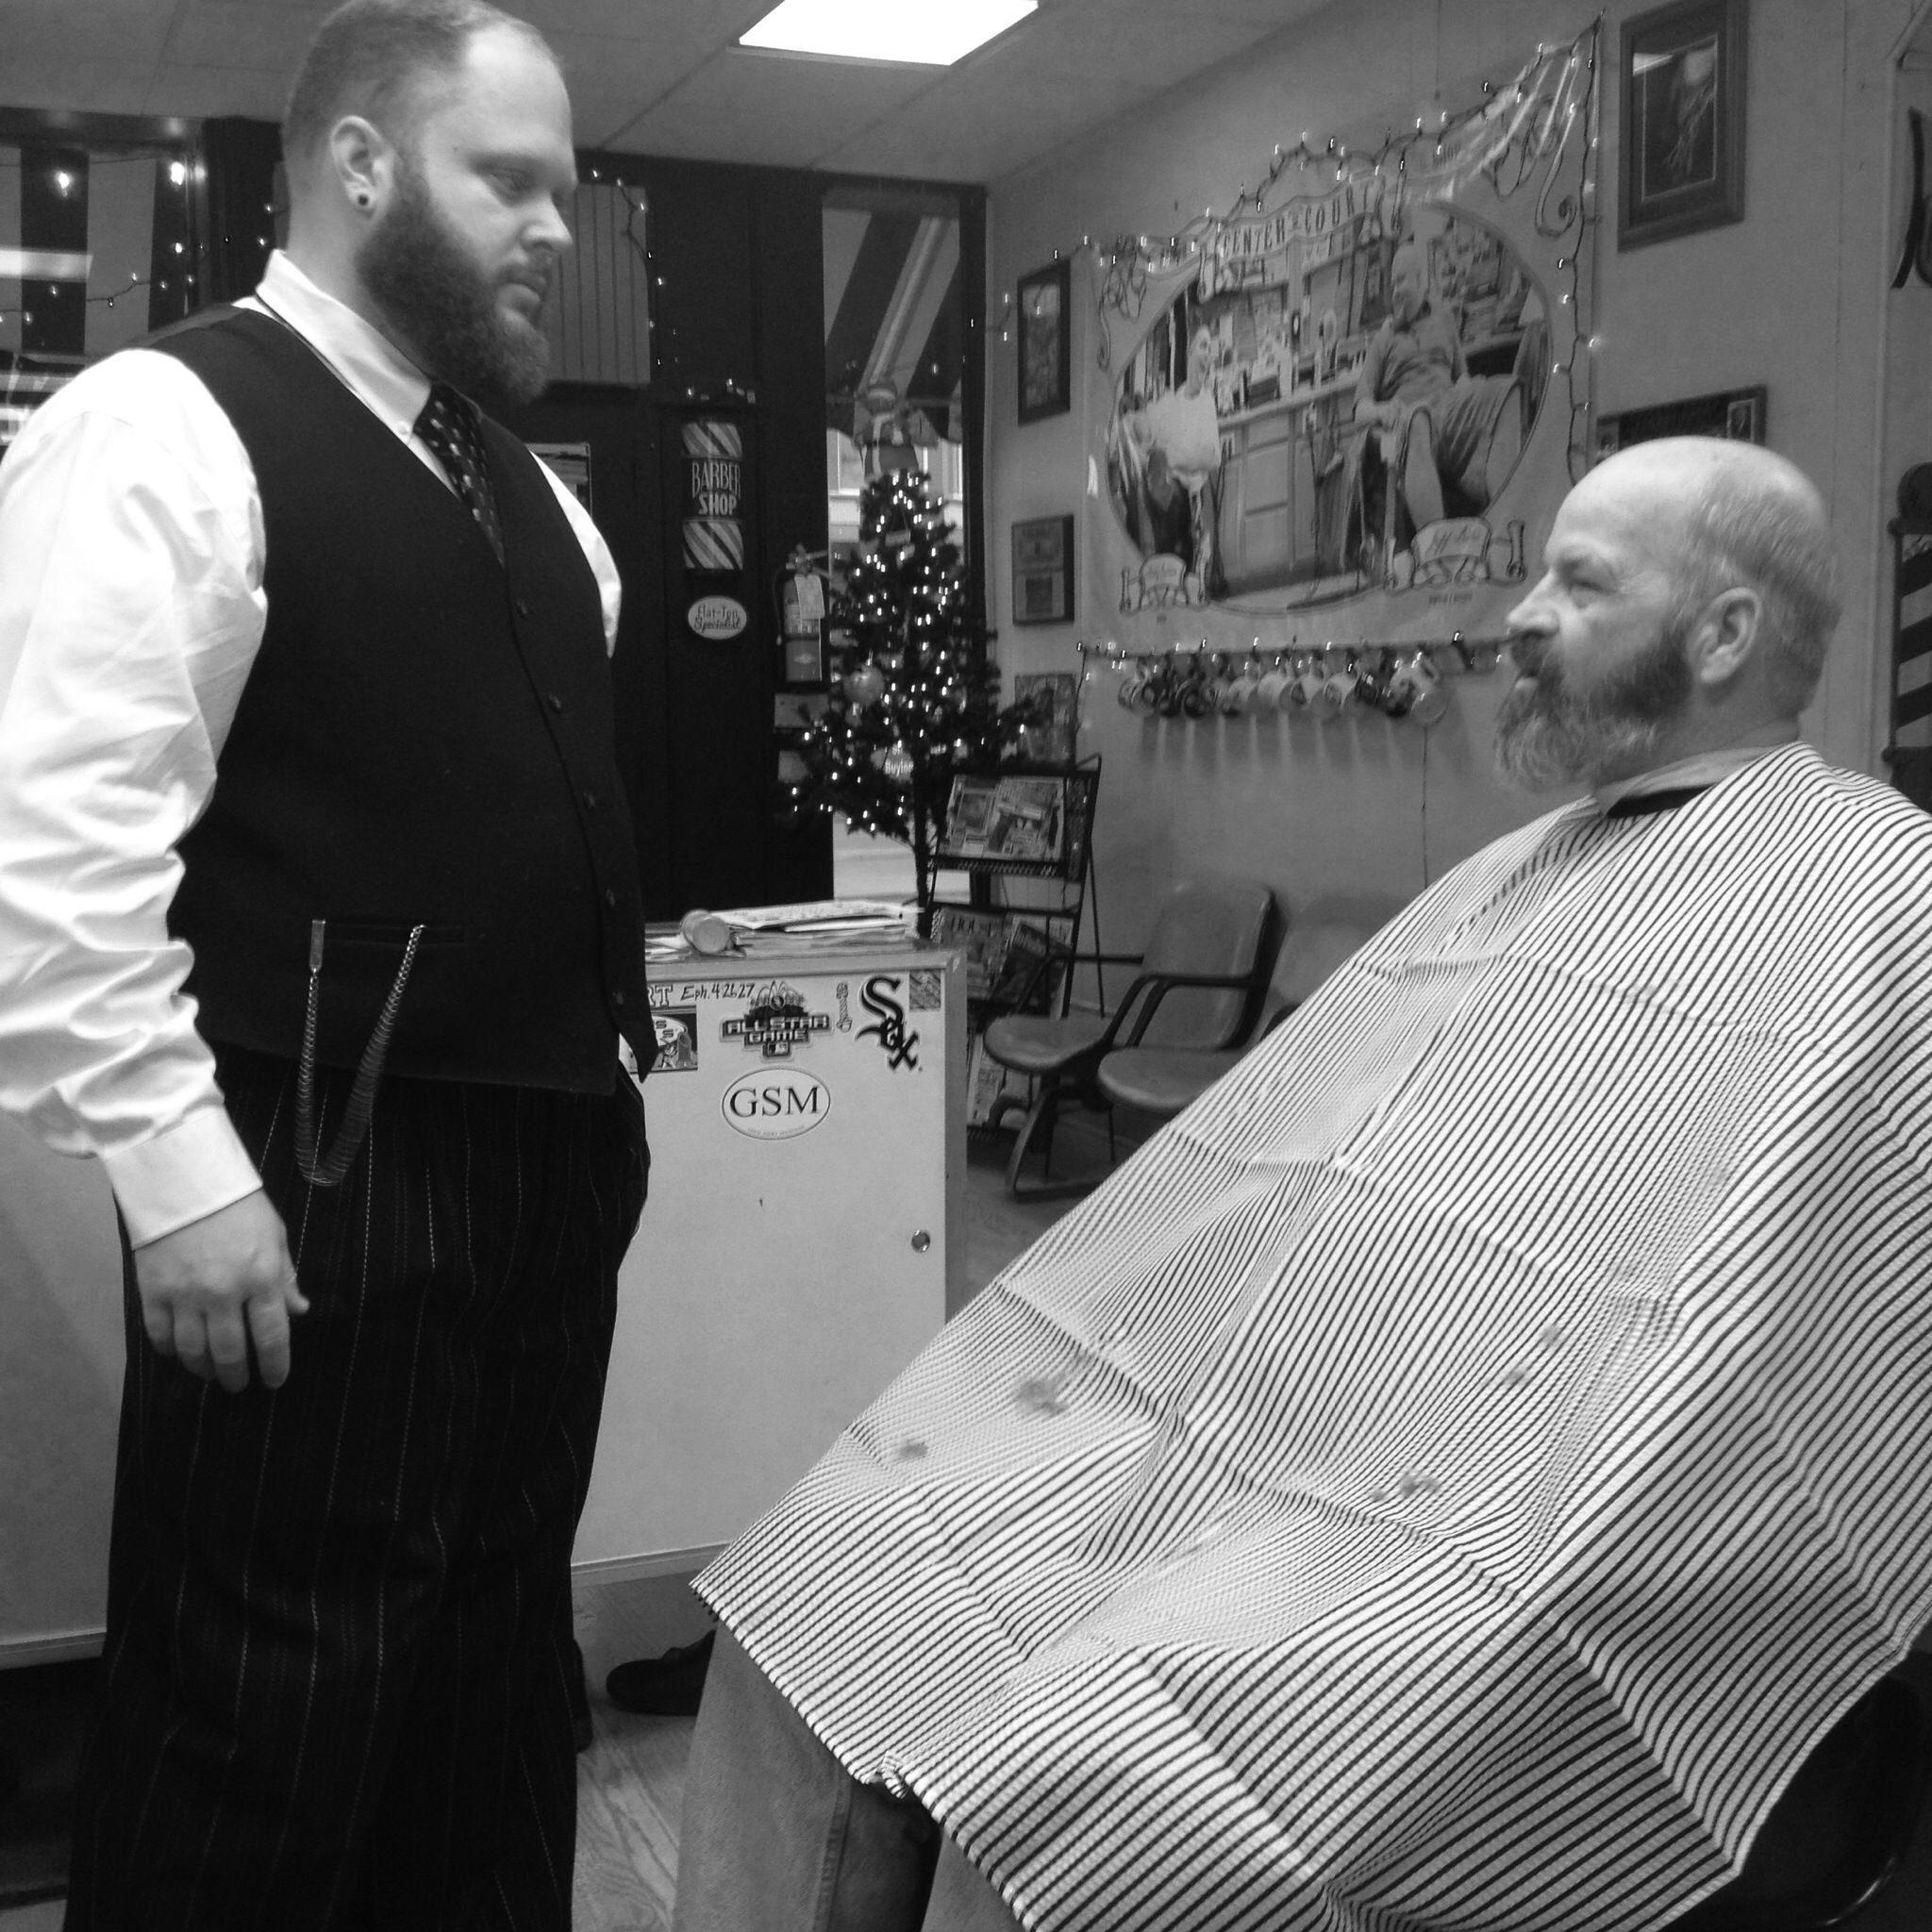 Mens haircut newtown ya have to love the old school feel  barber shop  pinterest